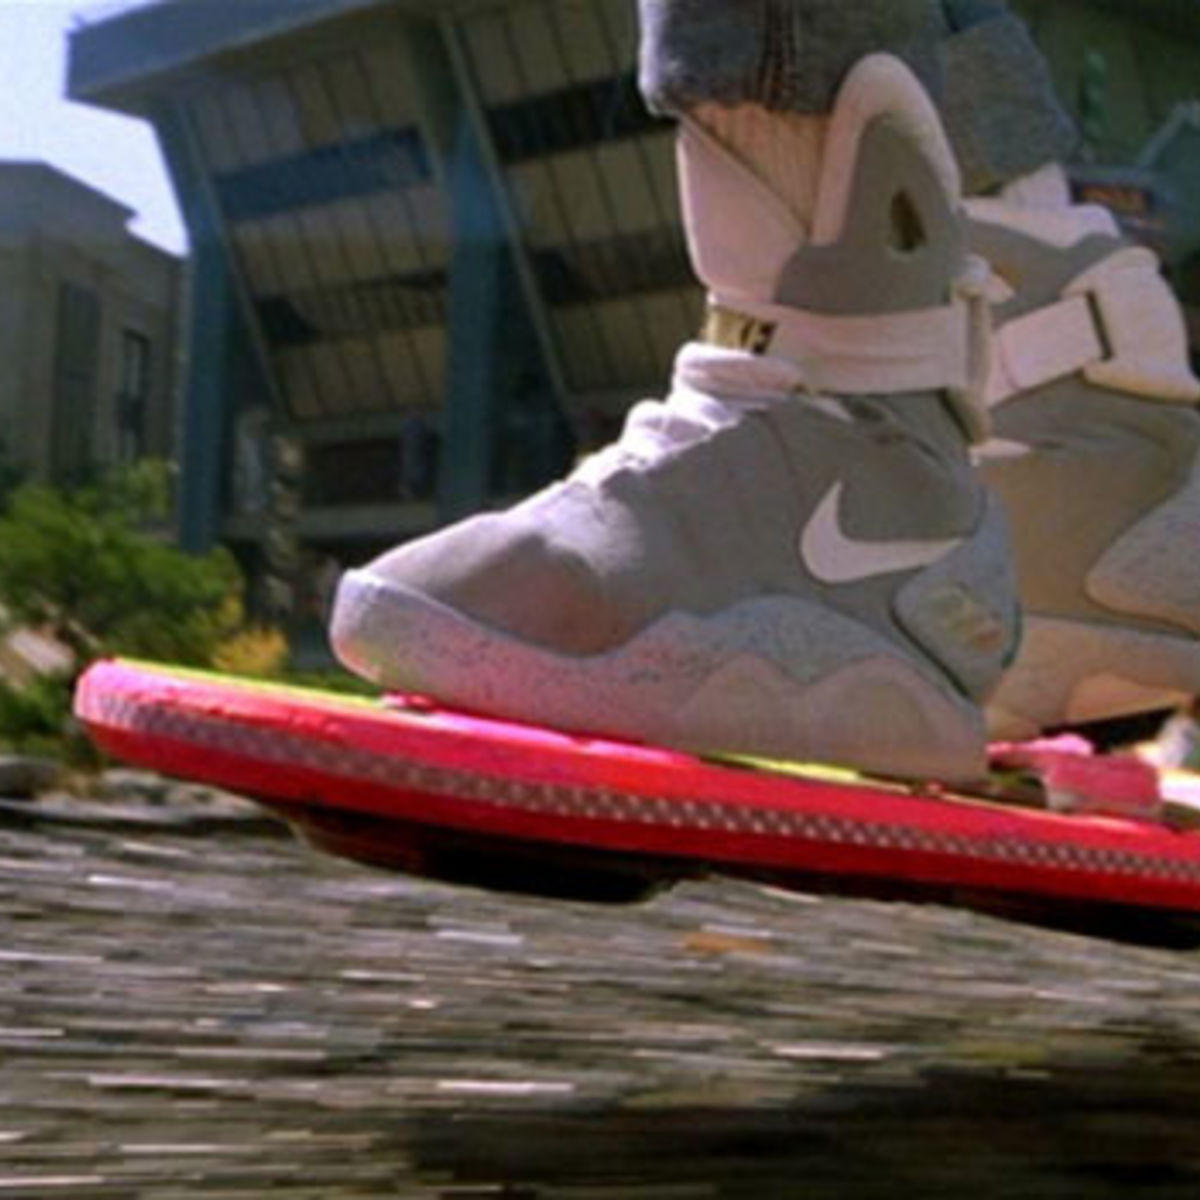 BacktotheFuture090811.jpg